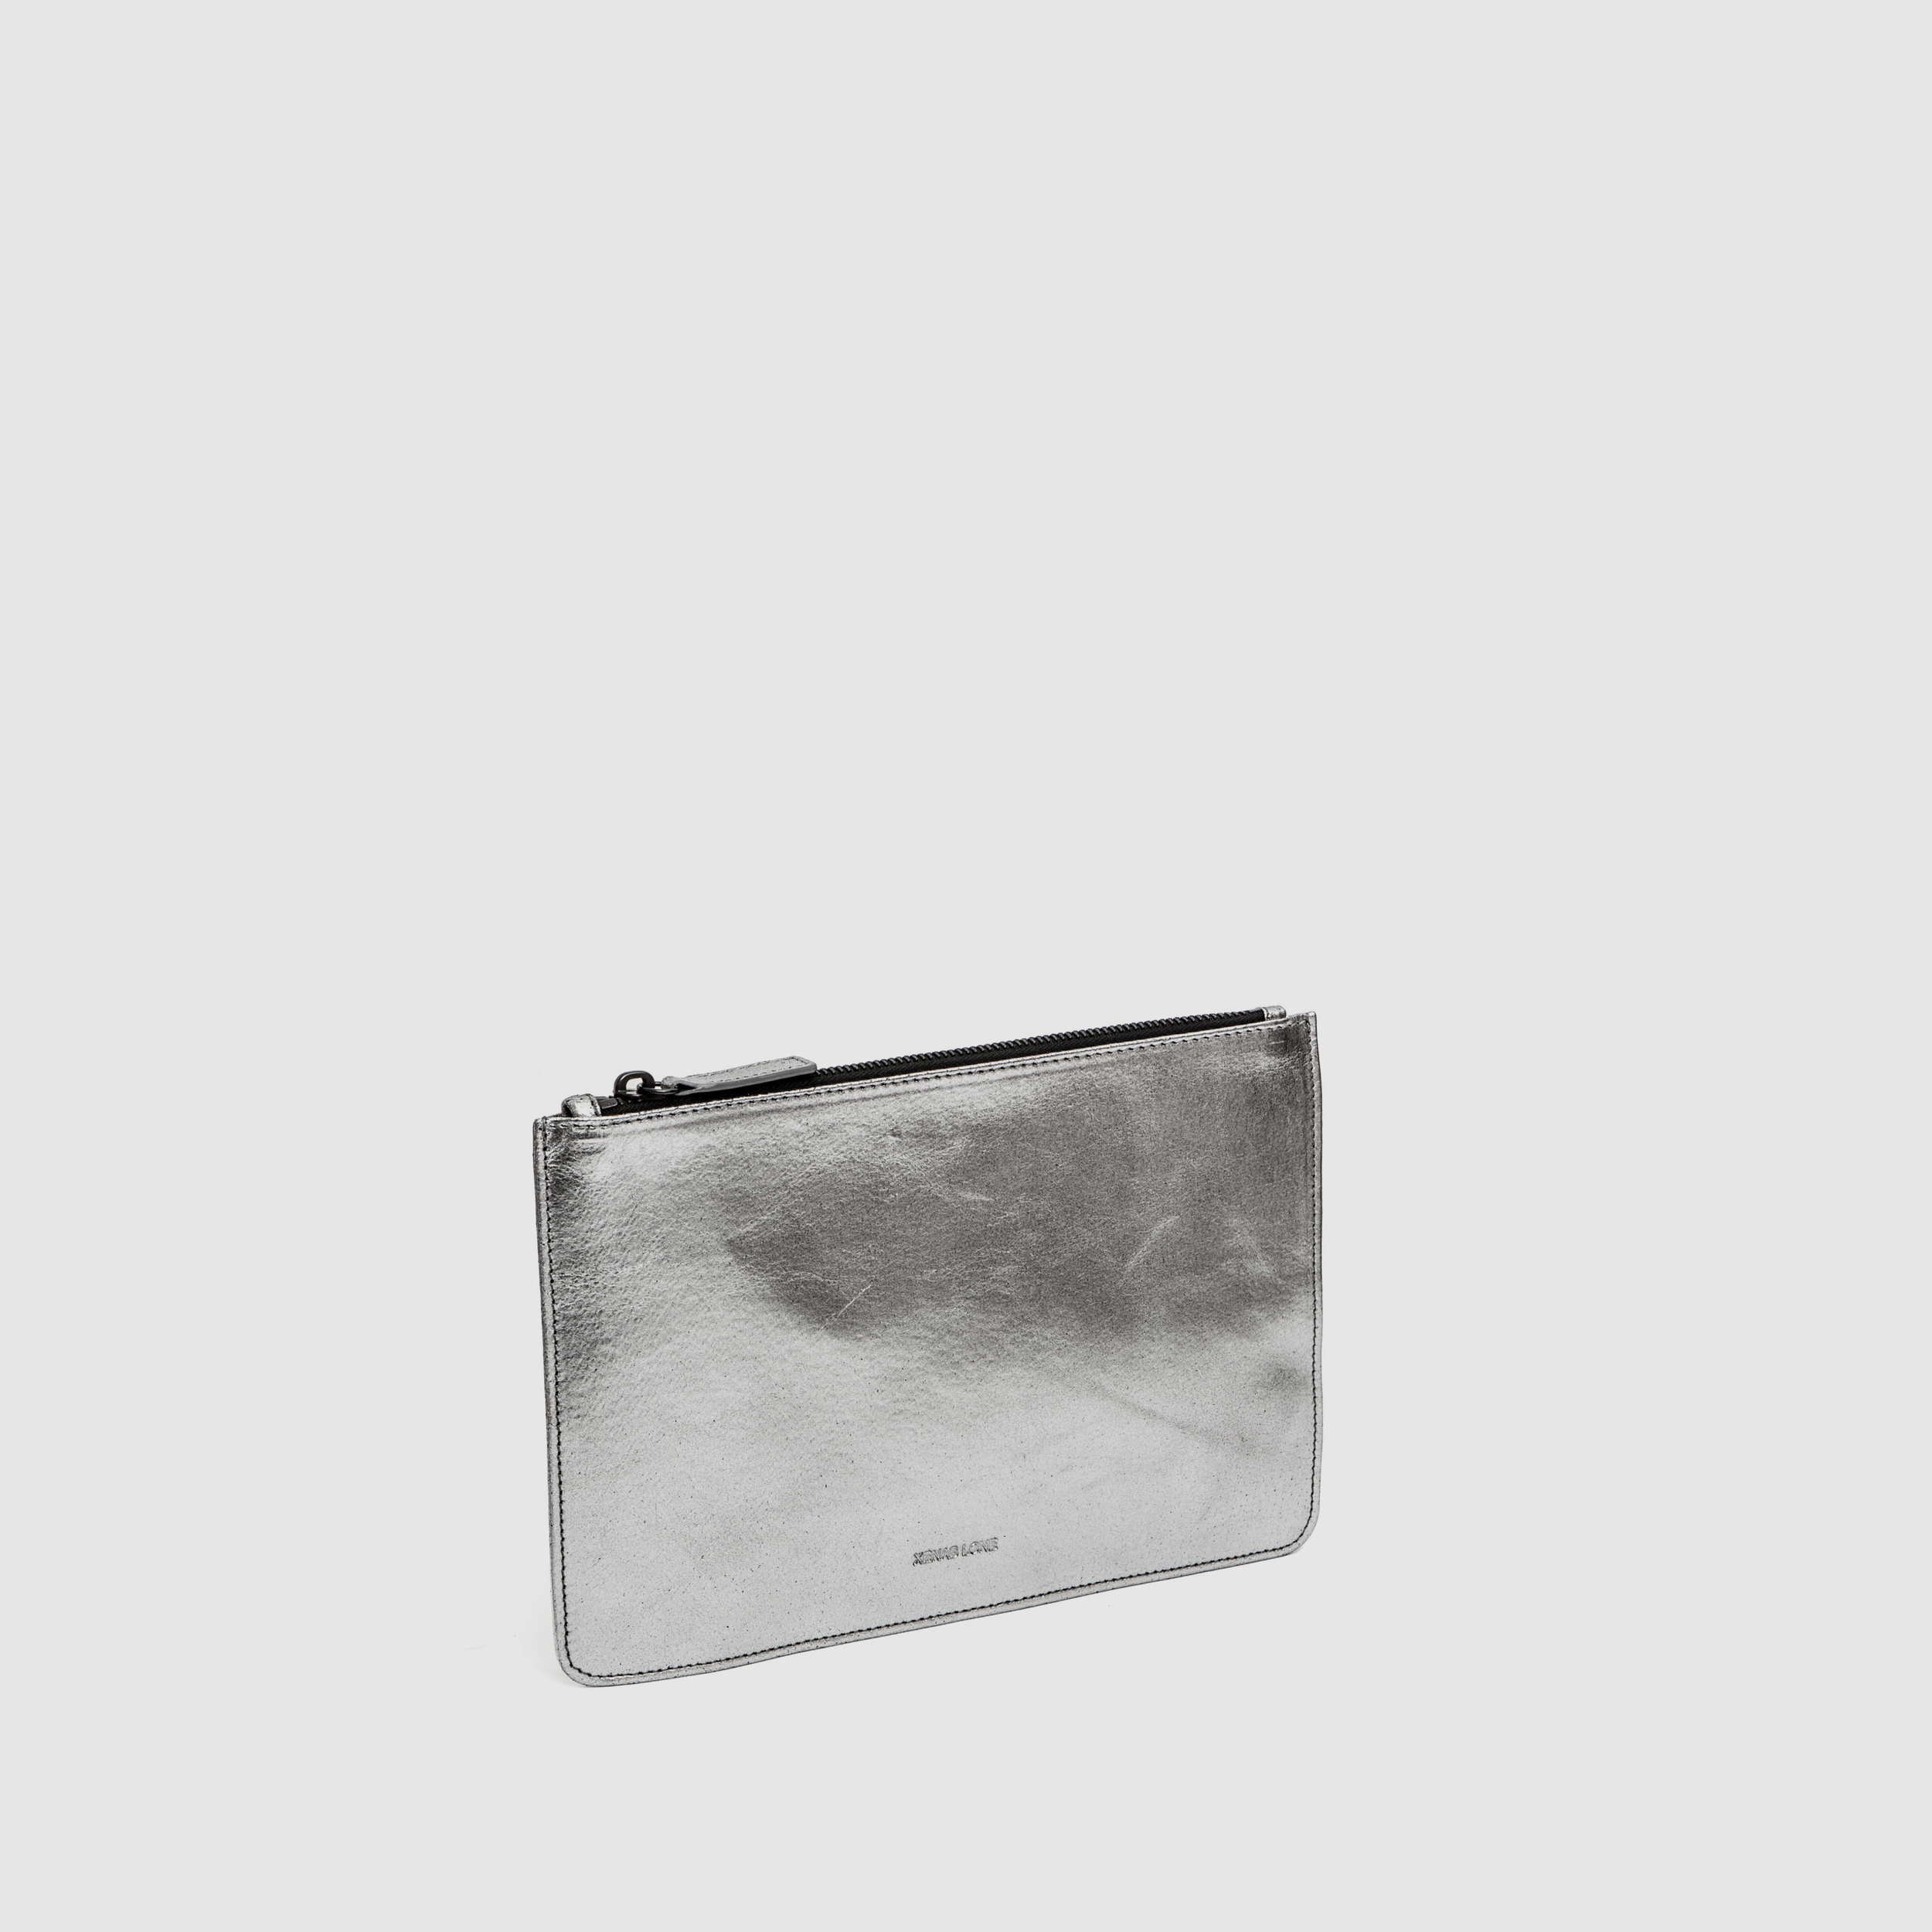 Wallets&Pouches_0000s_0001_Layer 48.jpg